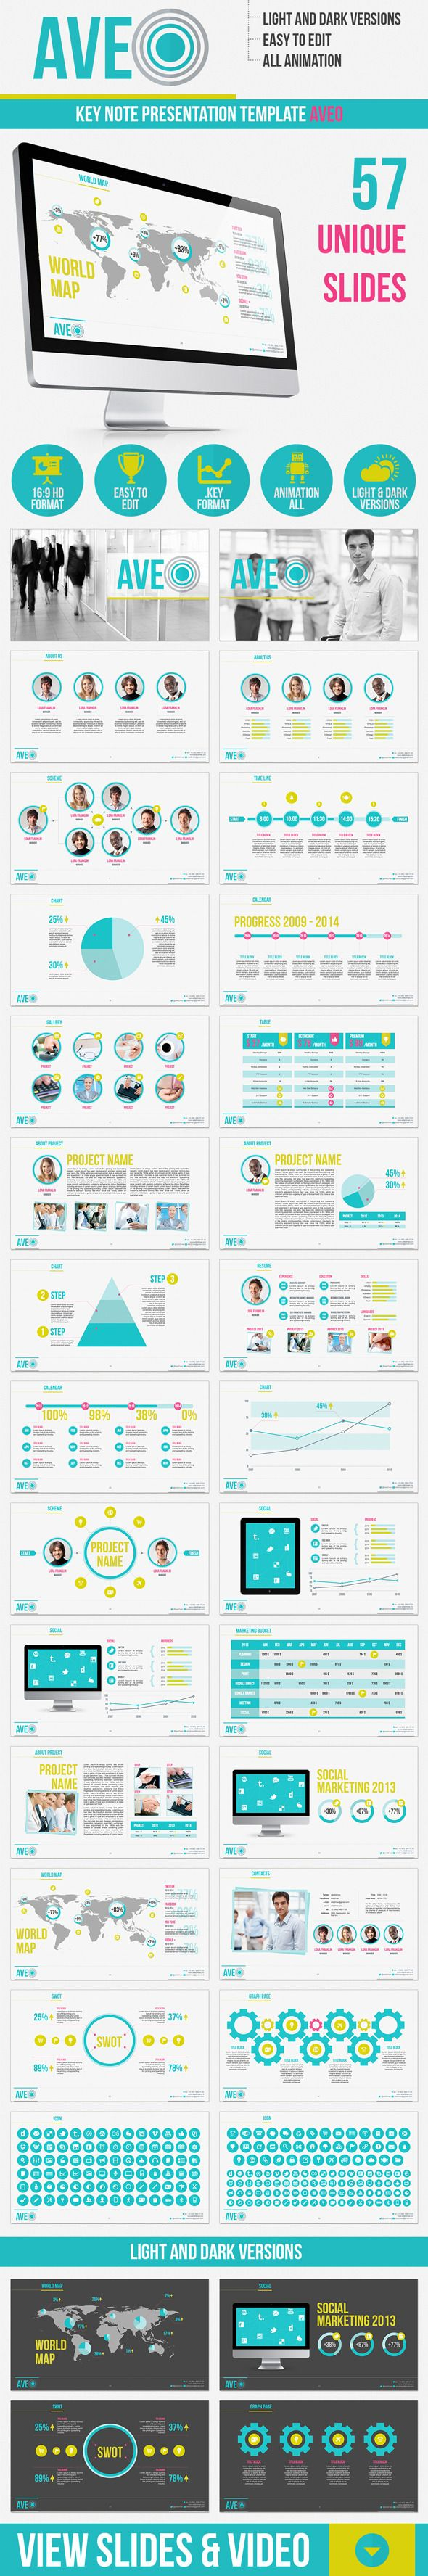 Keynote Template #keynote #keynotetemplate #presentation Download: http://graphicriver.net/item/aveo/6610550?ref=ksioks